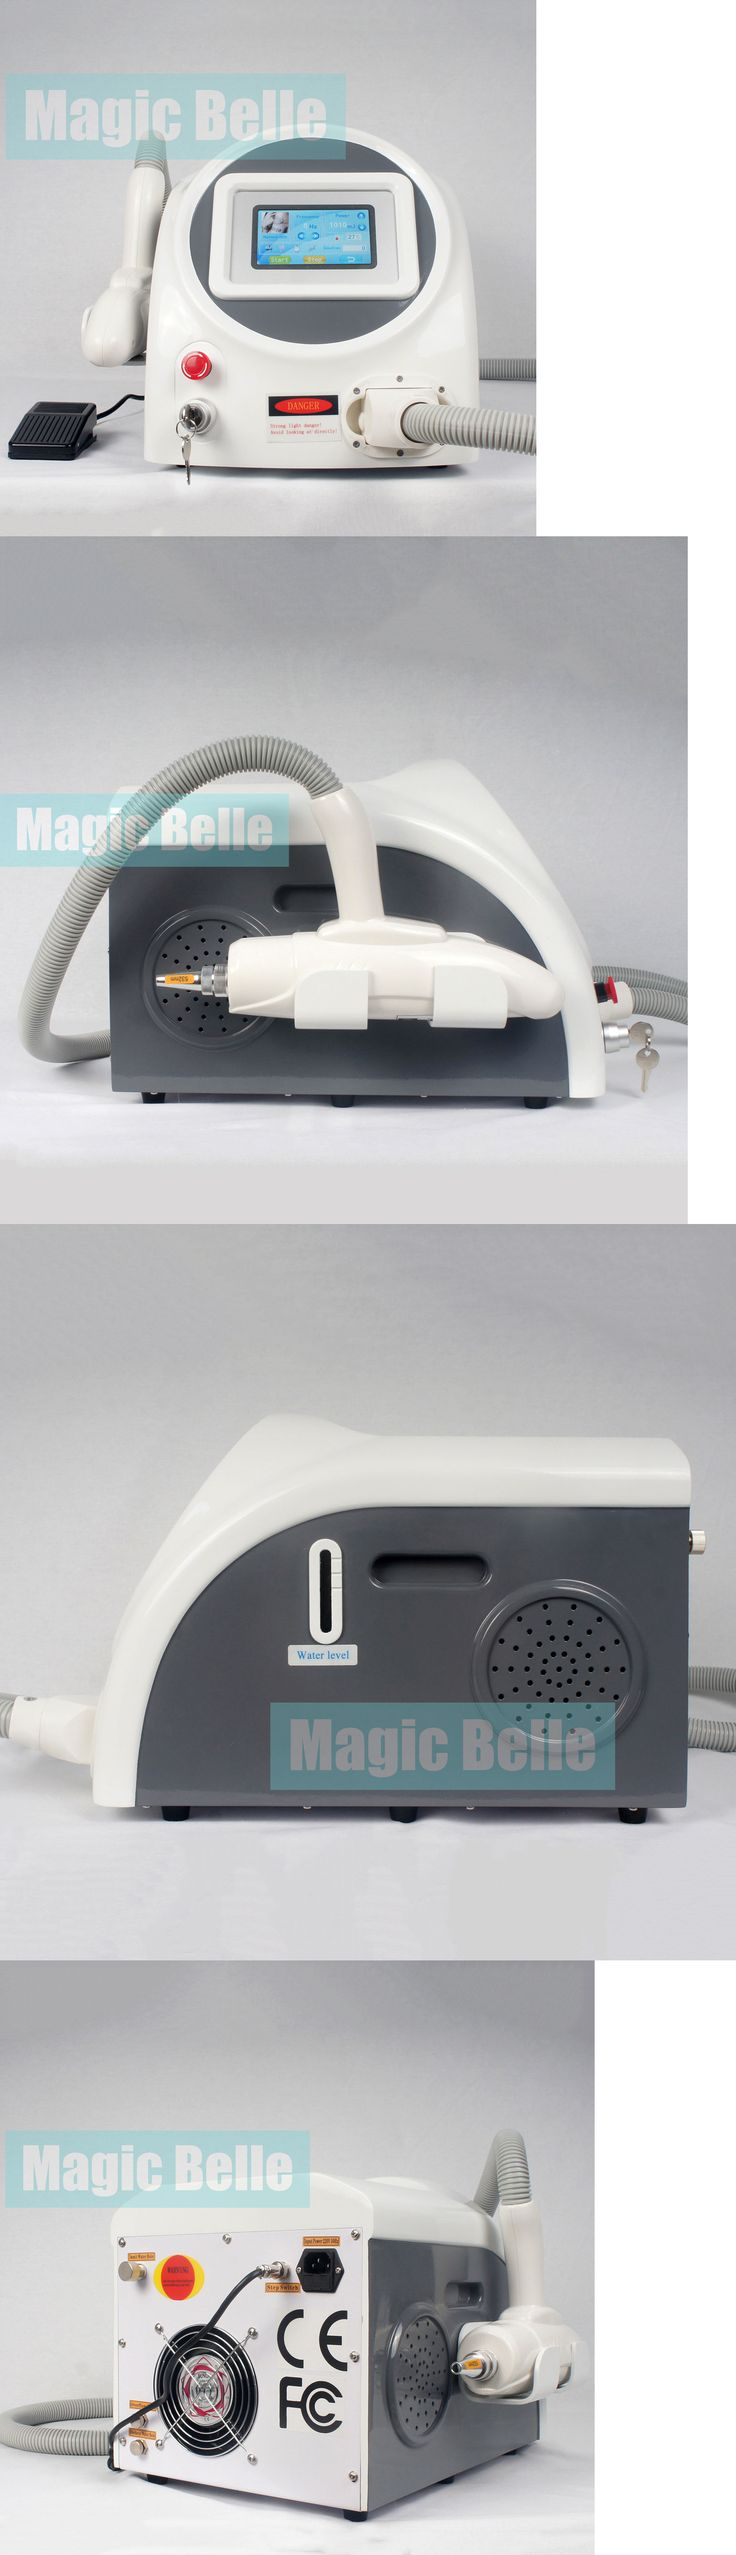 Tattoo Removal Machines: Q Switch Nd Yag Laser/Tattoo Removal Laser Machine For Salon Use -> BUY IT NOW ONLY: $1380.0 on eBay!